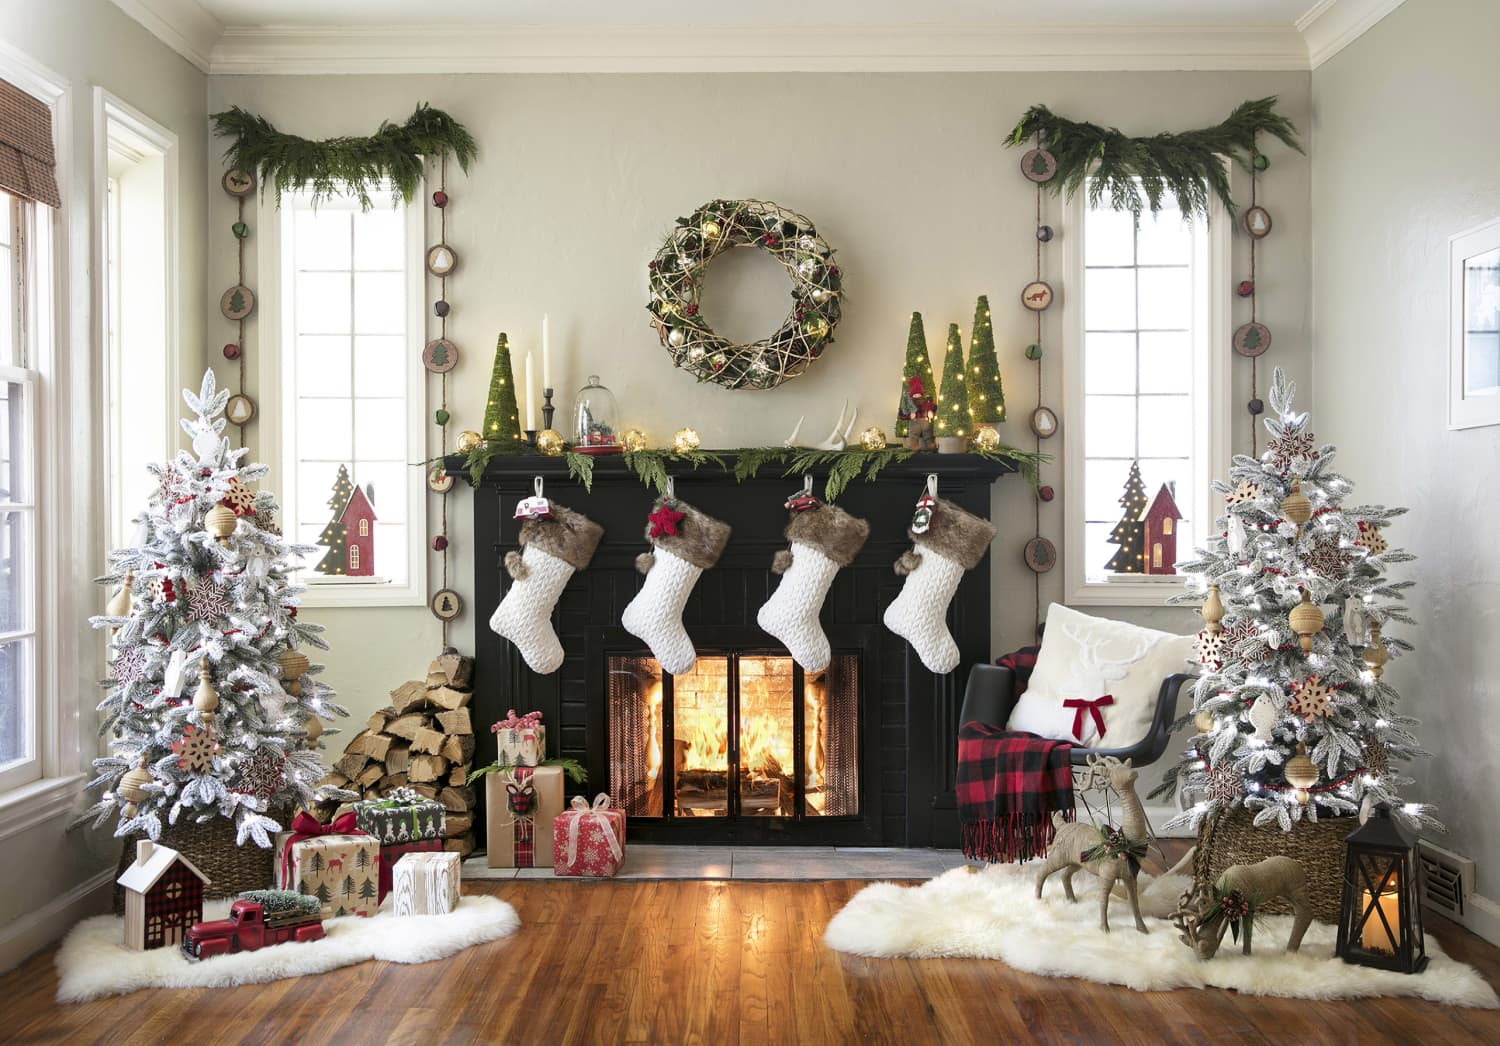 The Best Holiday Decor Deals At Lowe's This Season